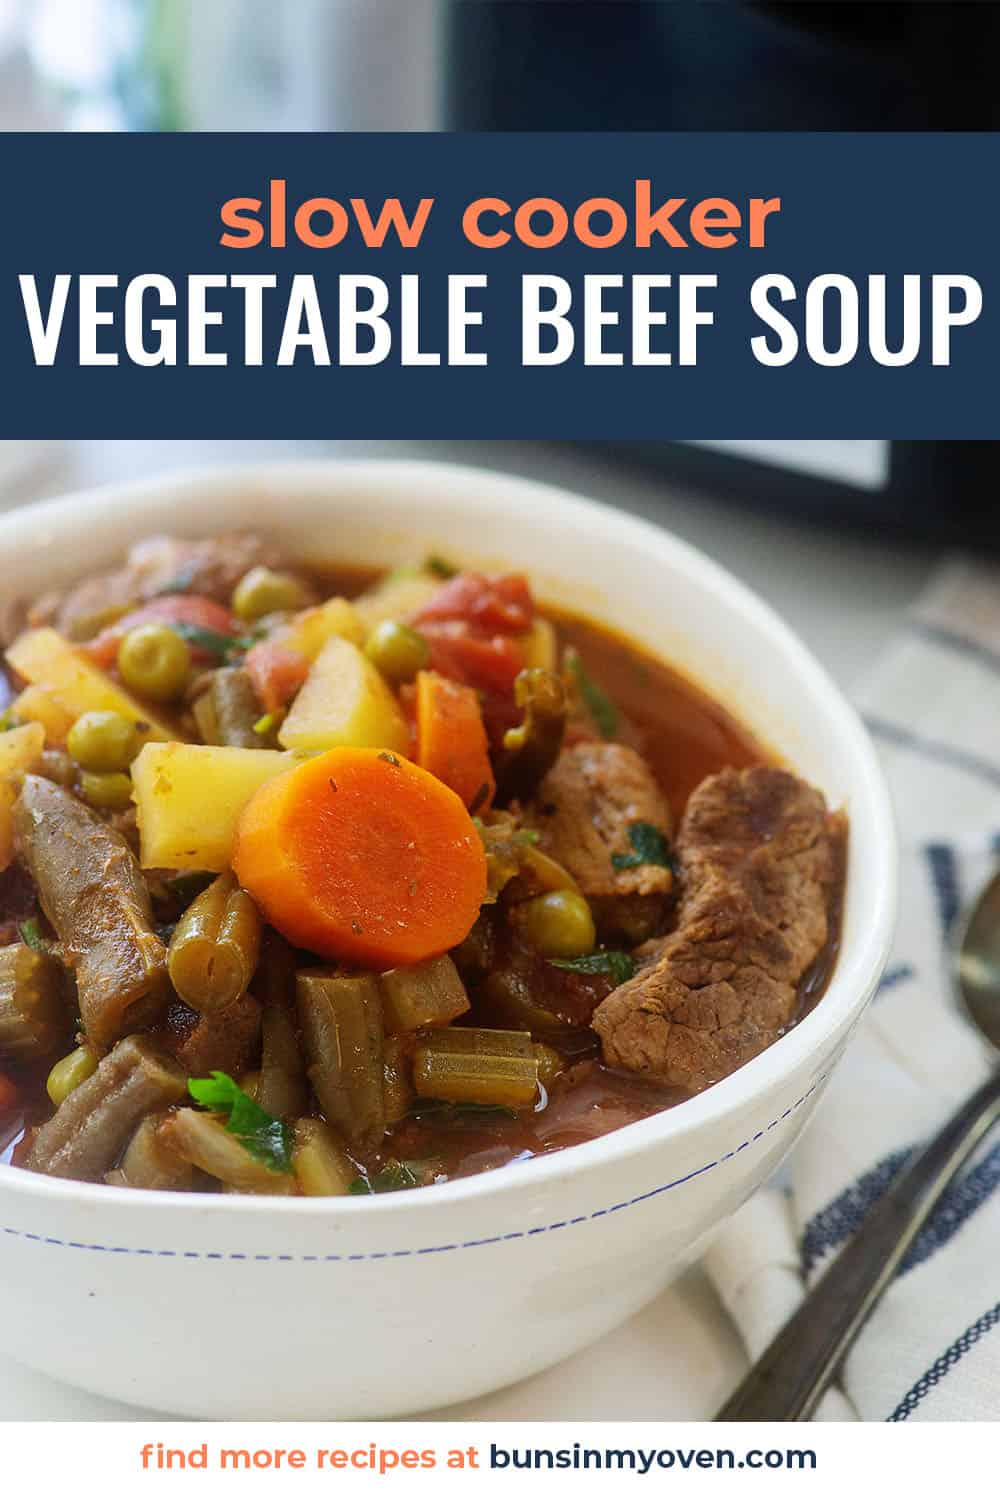 crockpot vegetable beef soup in bowl with text for Pinterest.